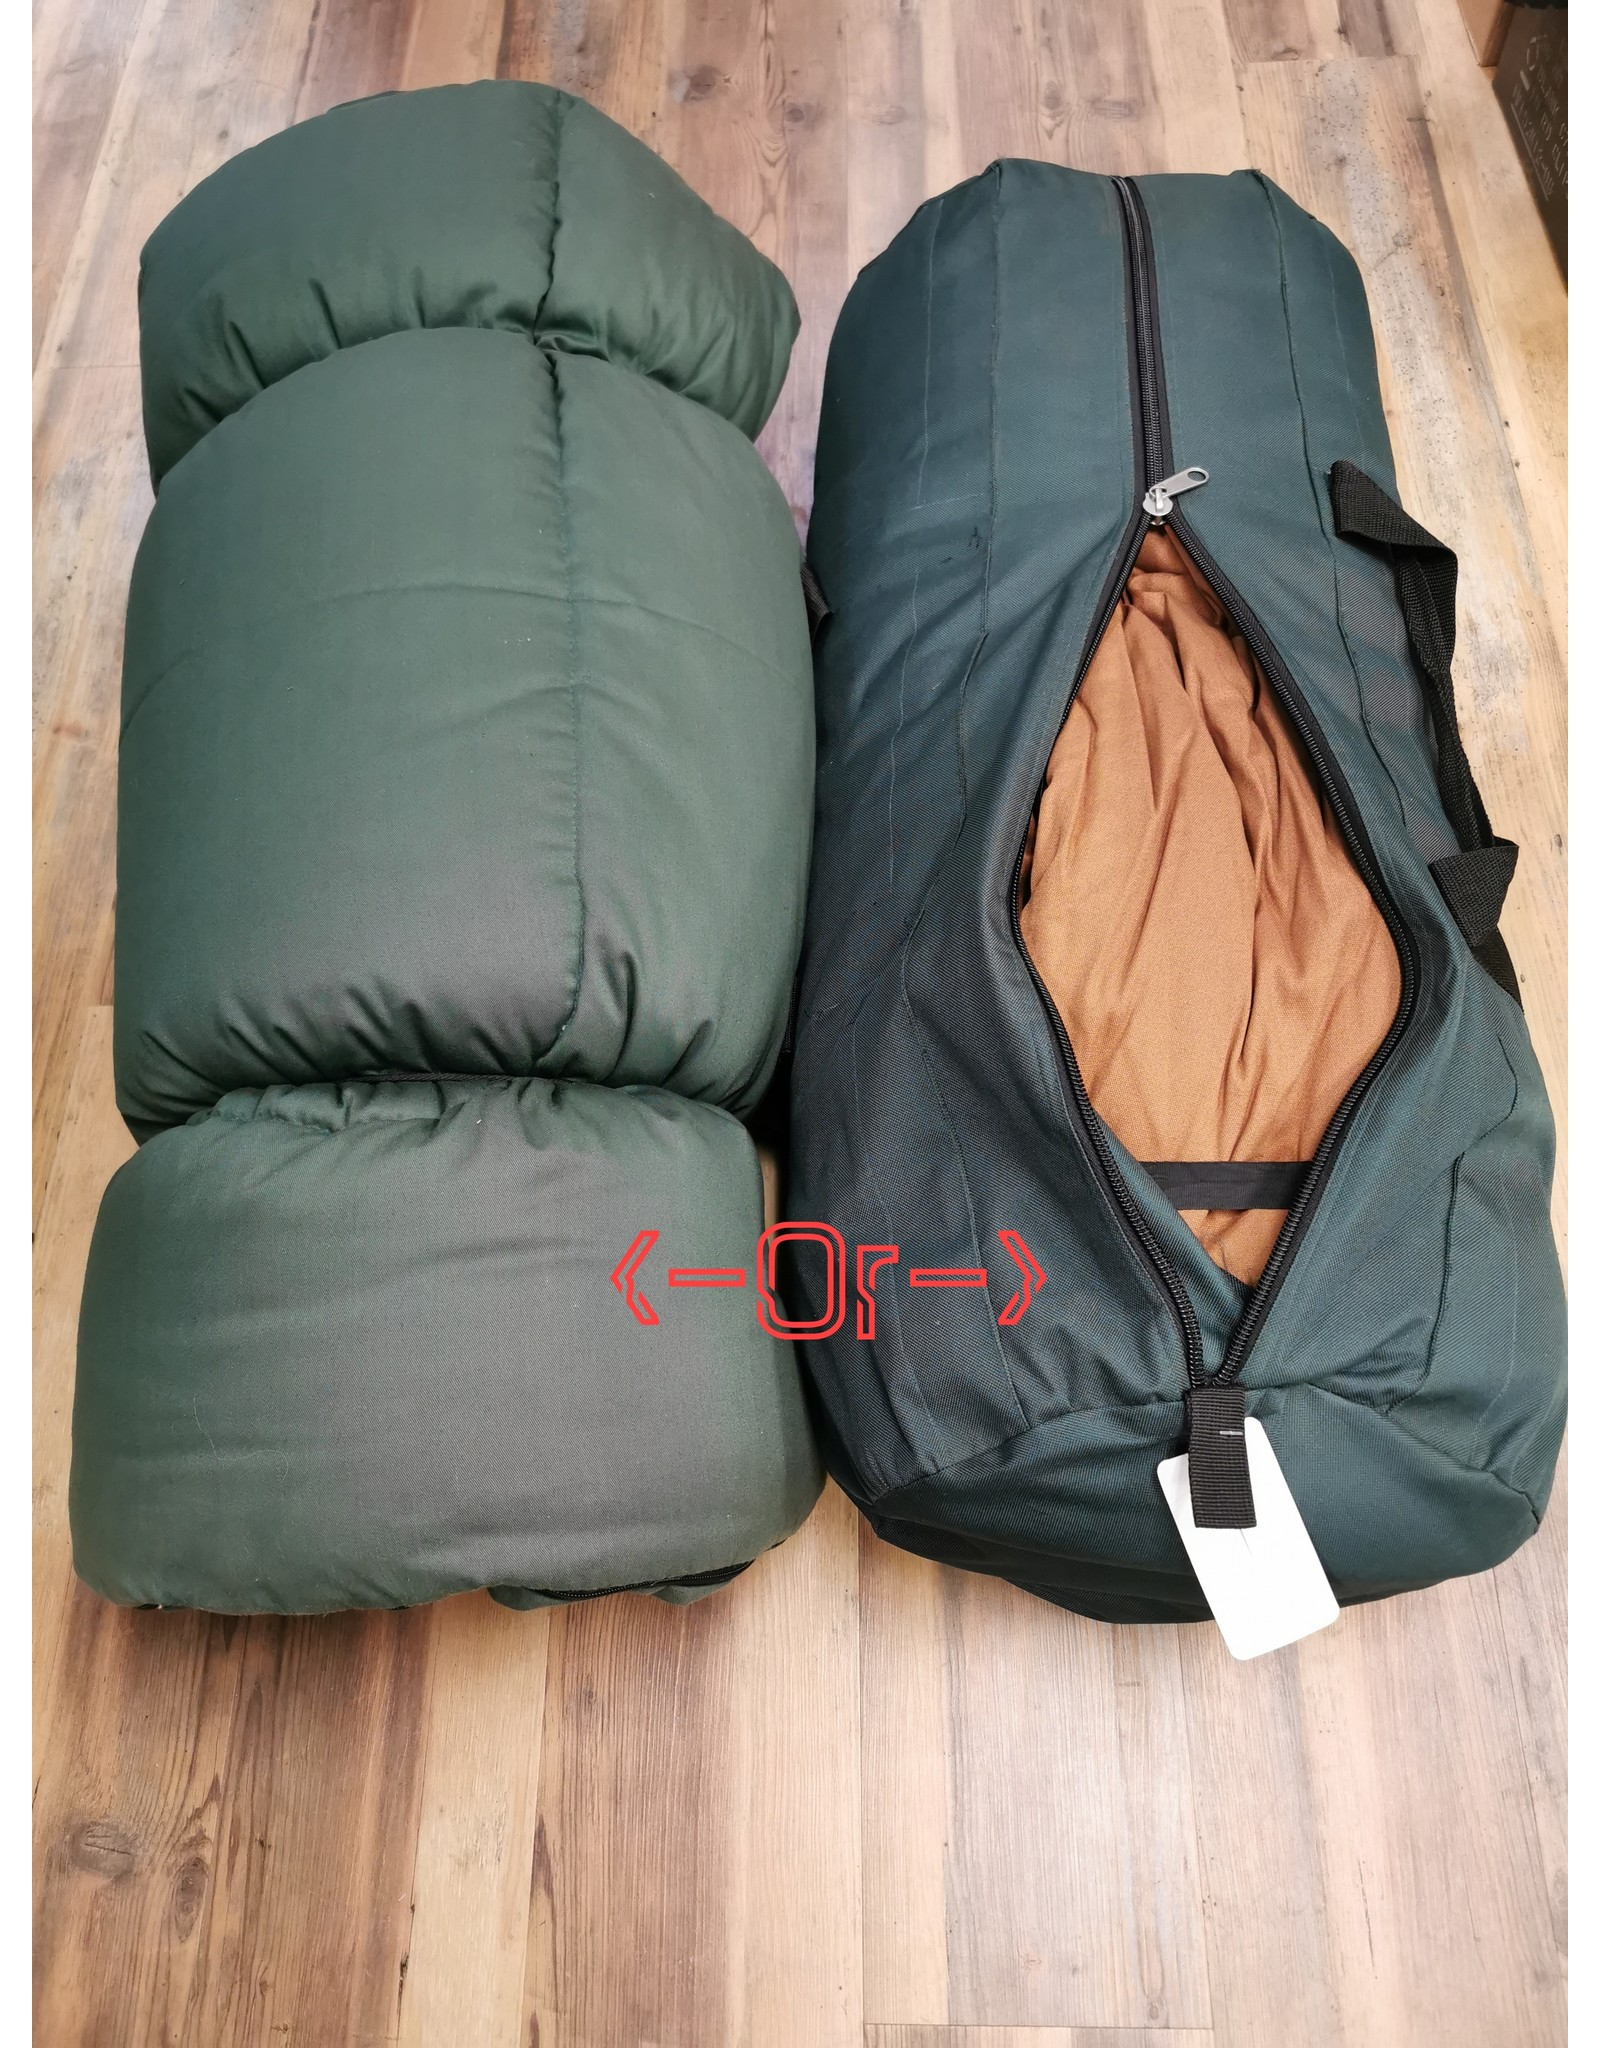 SAS CABIN / HUNTING CAMP SLEEPING BAGS